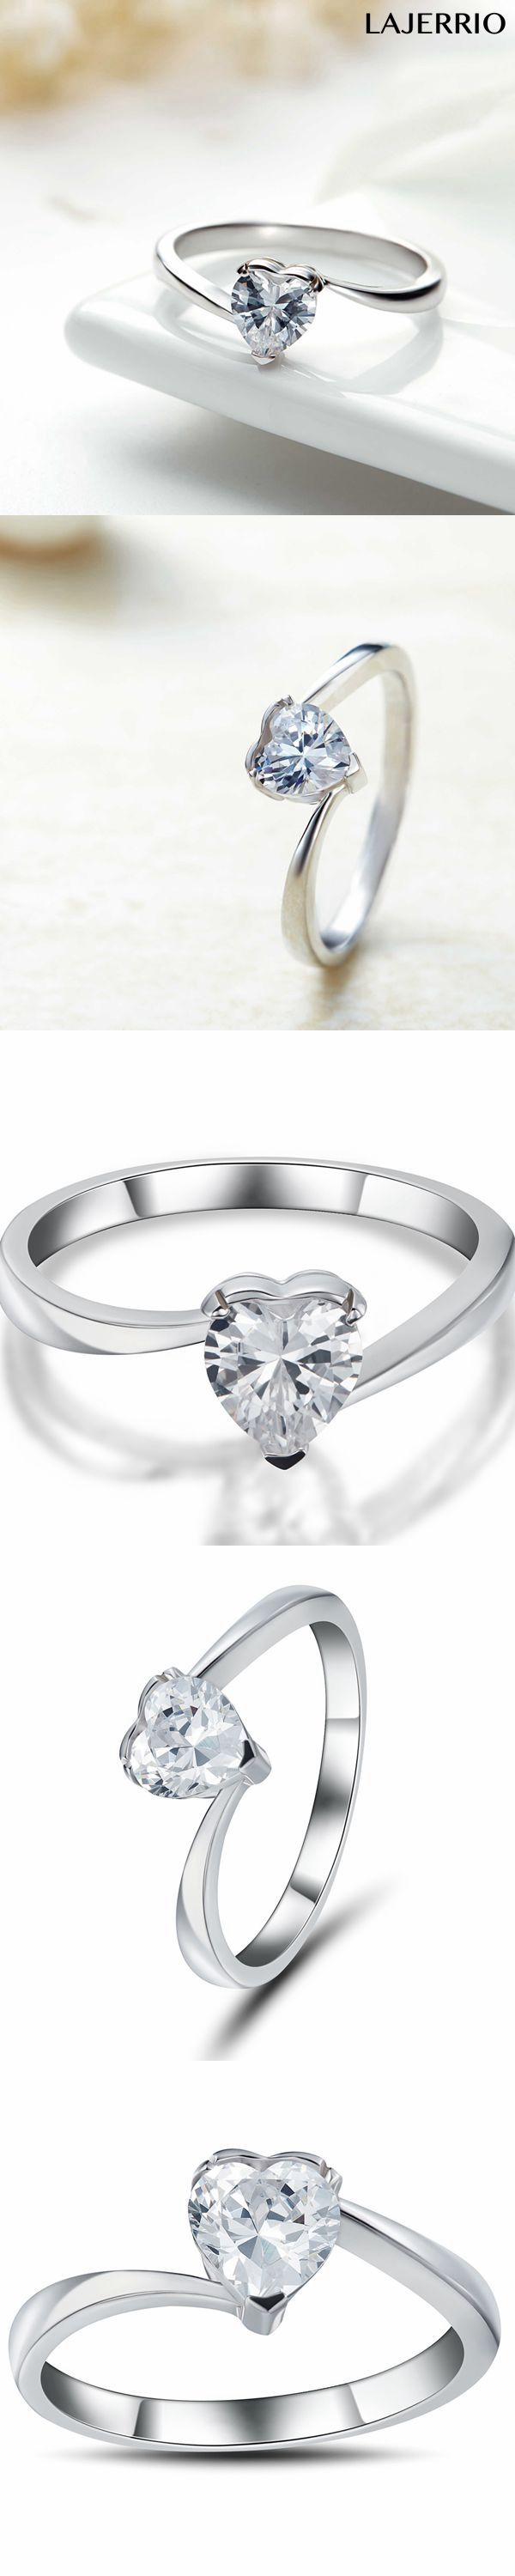 Lajerrio Jewelry 0.5CT Heart Cut White Sapphire S925 Engagement Ring